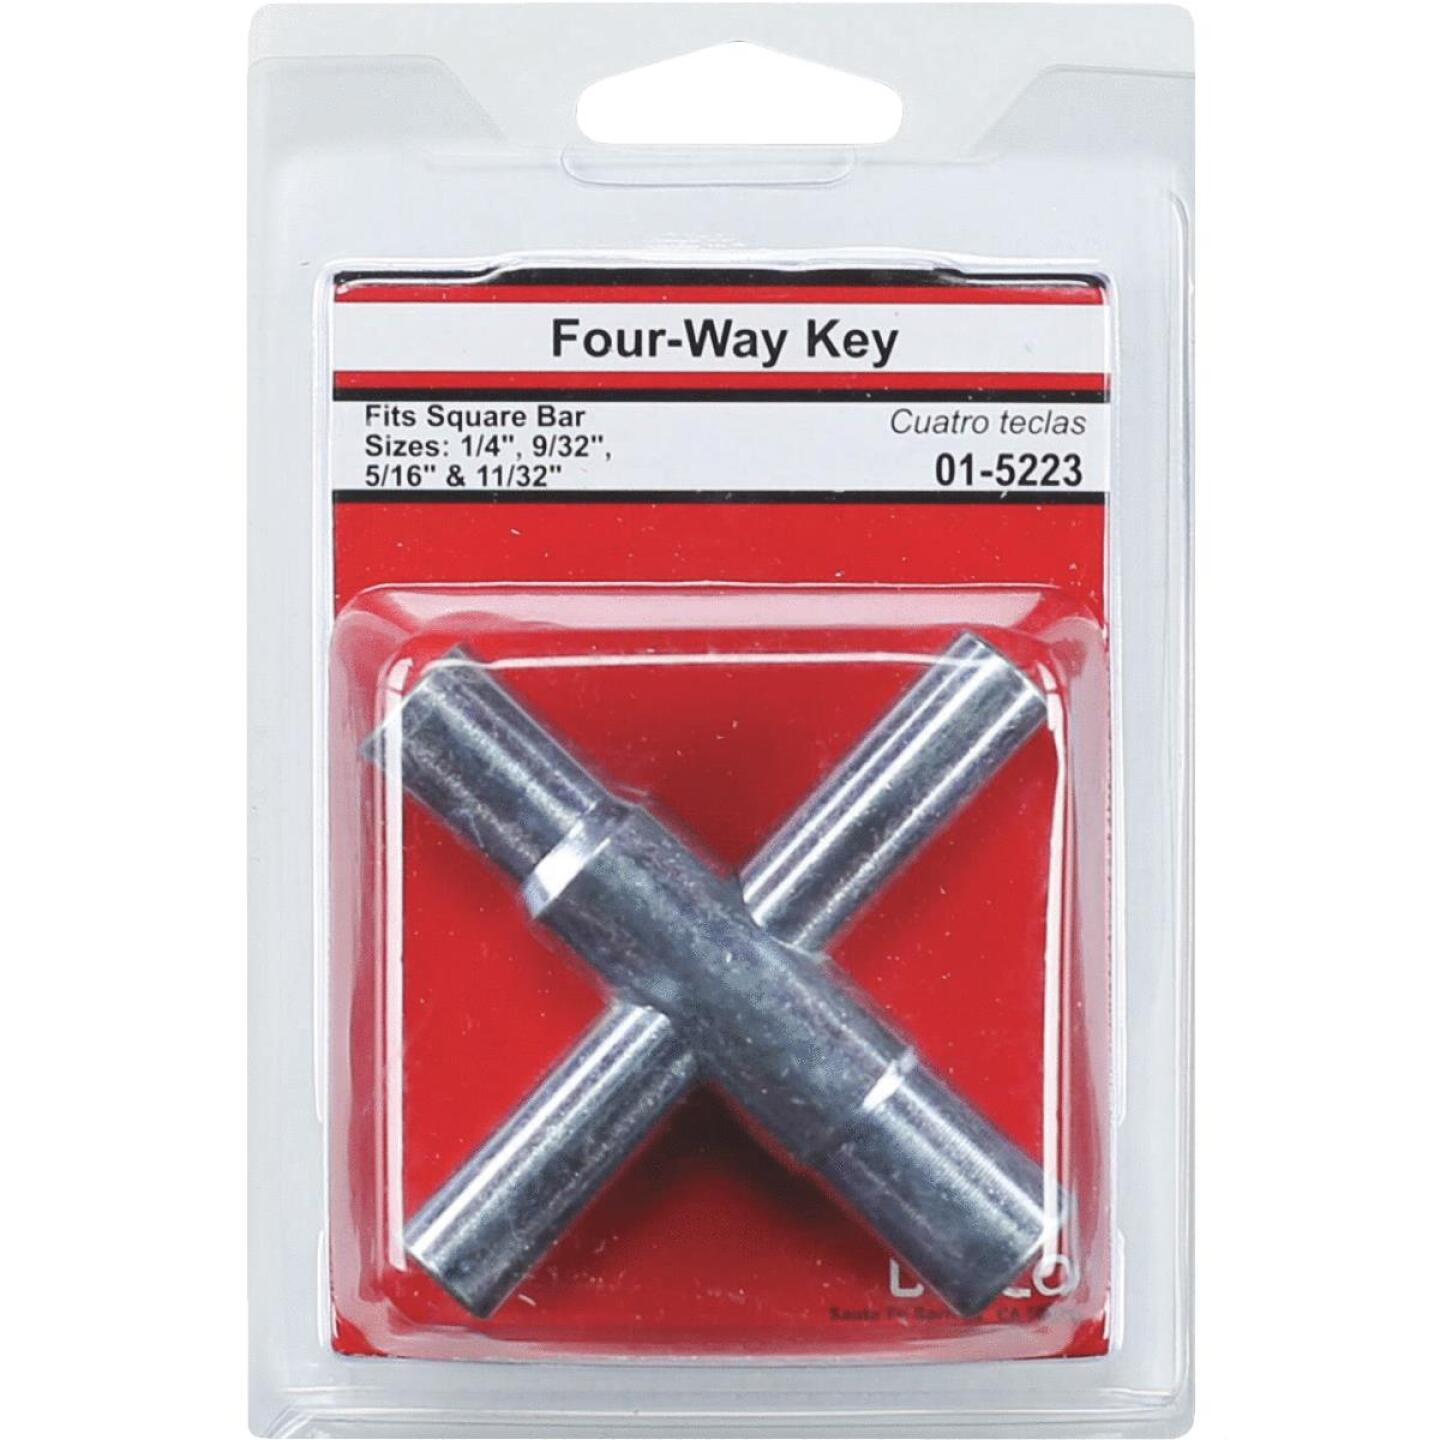 Lasco 4-Way Faucet Key for 1/4, 9/32, 5/16 & 11/32 In. Stems Image 2